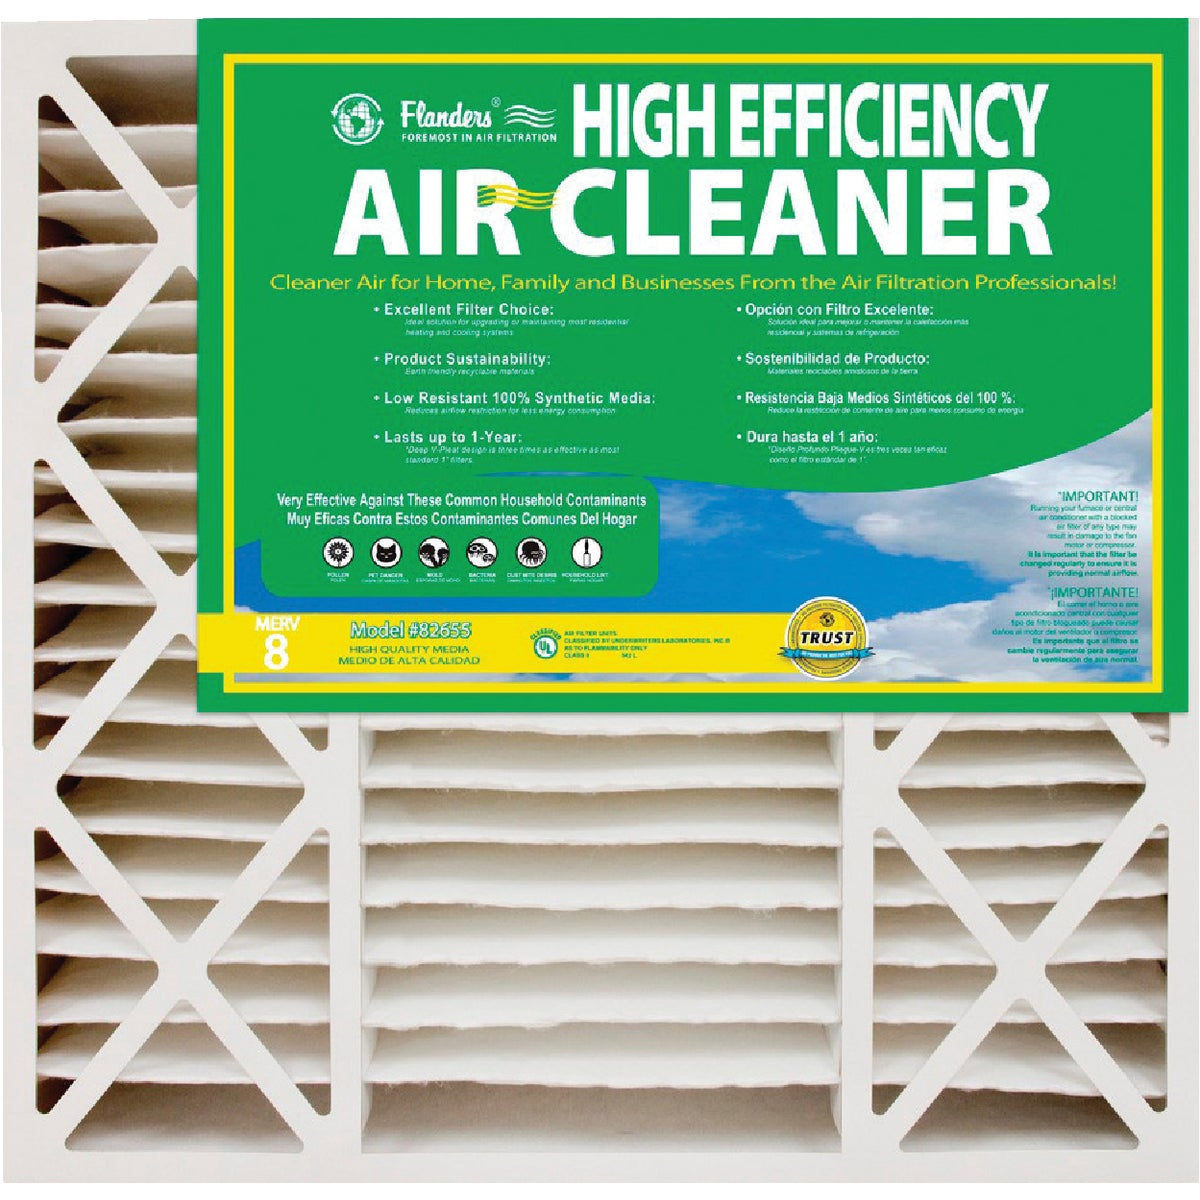 Flanders/Precisionaire 20X25X5 FURNACE FILTER 82655.0452025